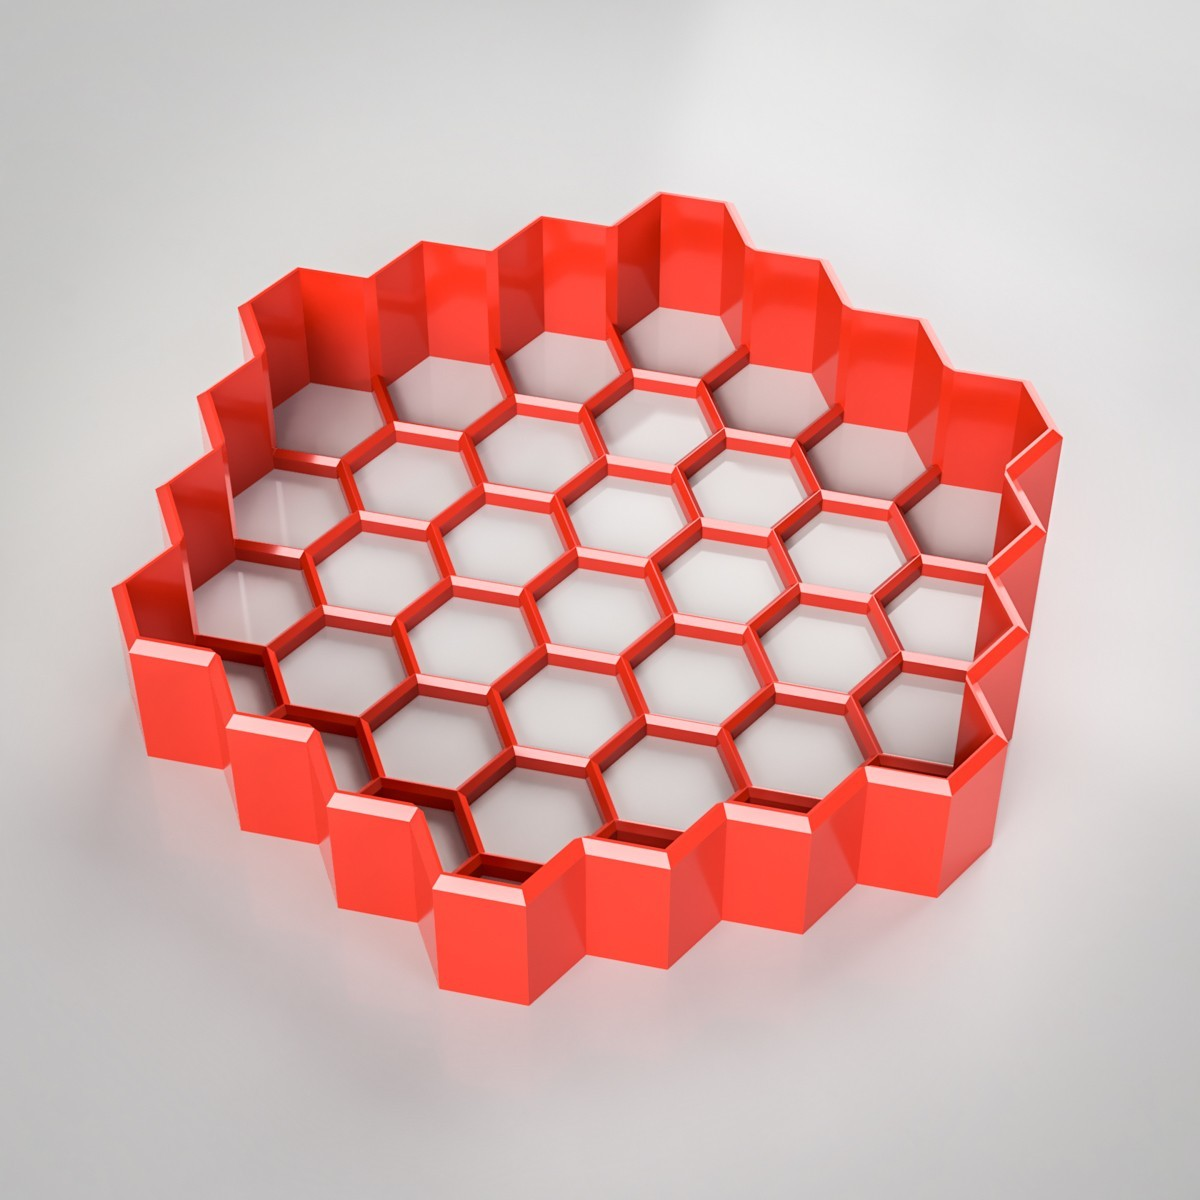 hexagonal-cookie-cutter.jpg Download STL file Honeycomb Cookie Cutter • Design to 3D print, simonprints